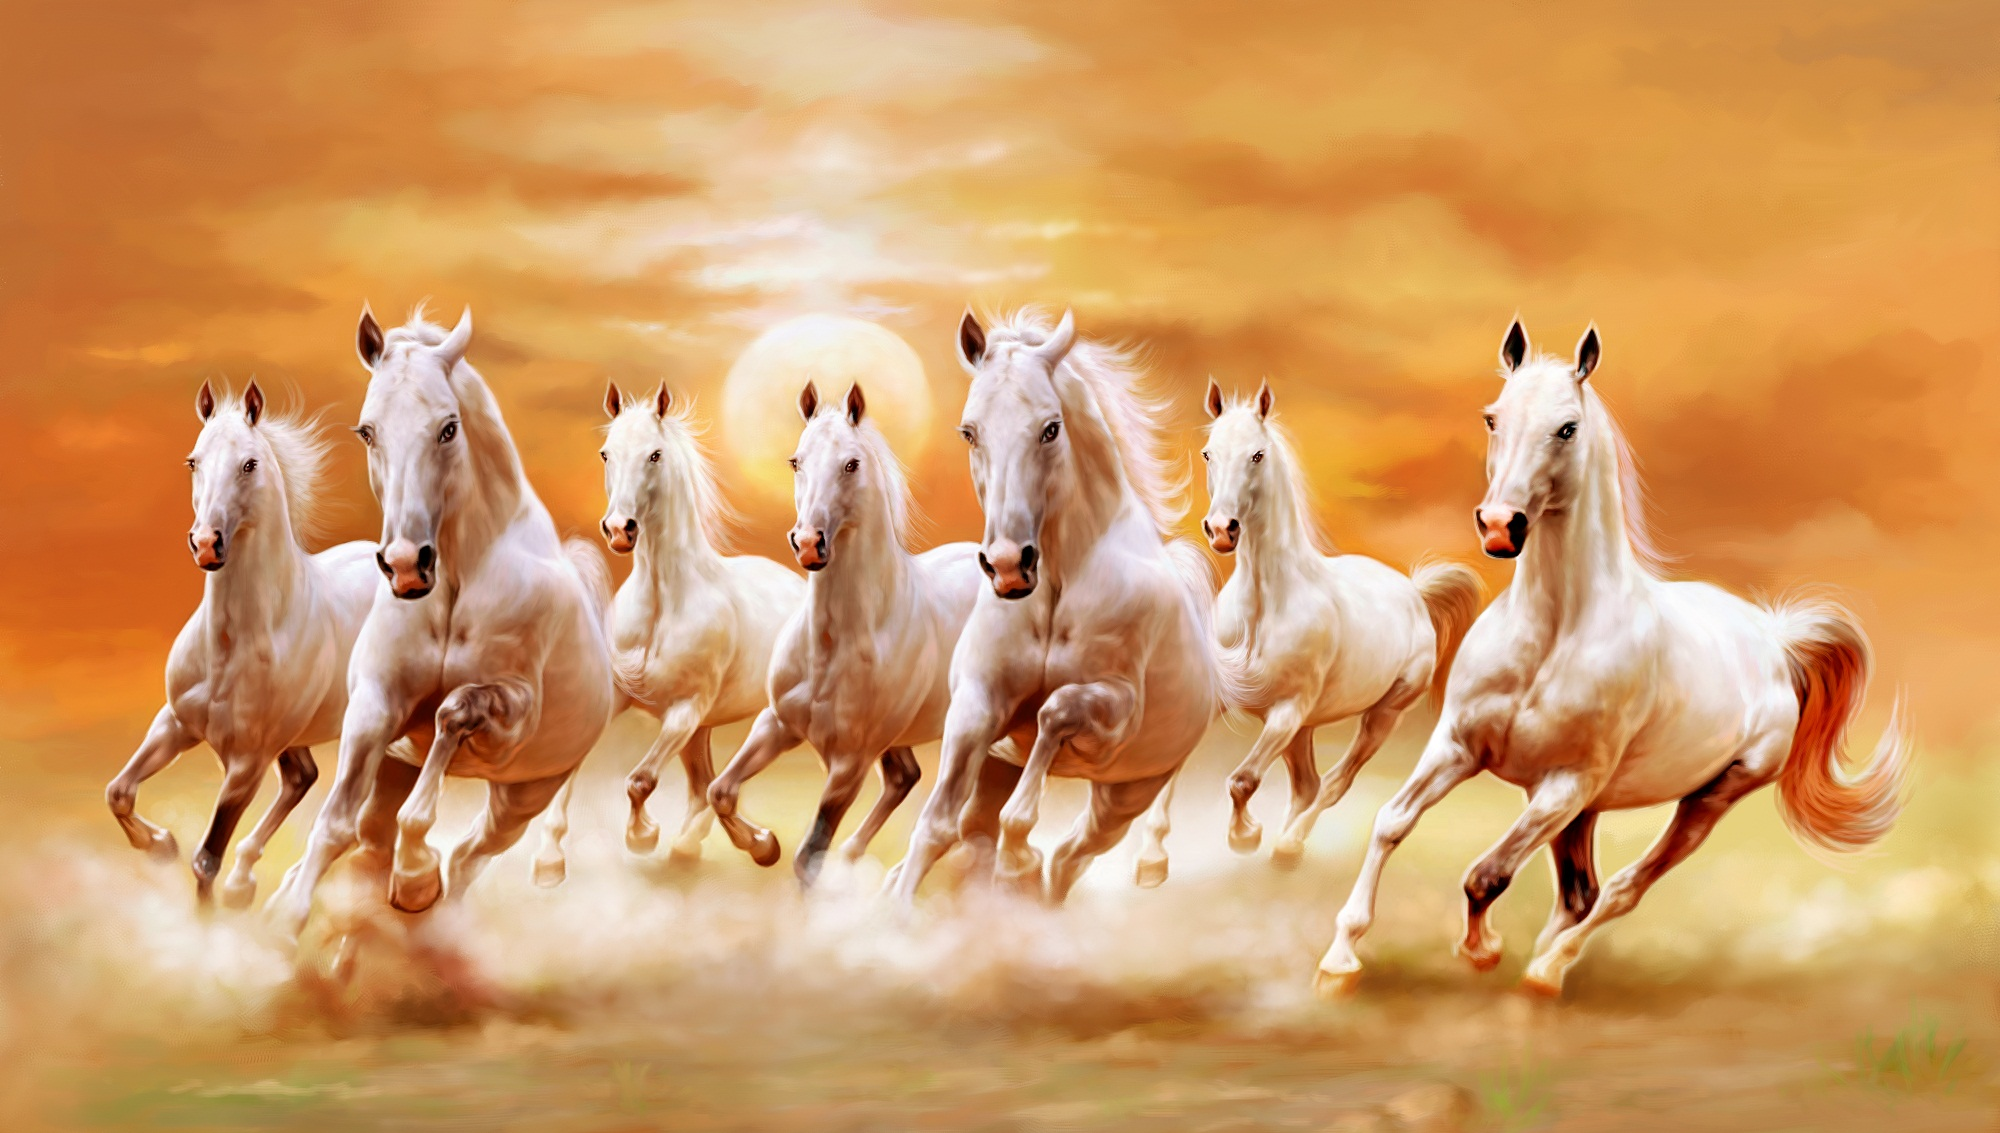 Running Horse Wallpapers  Full HD wallpaper search